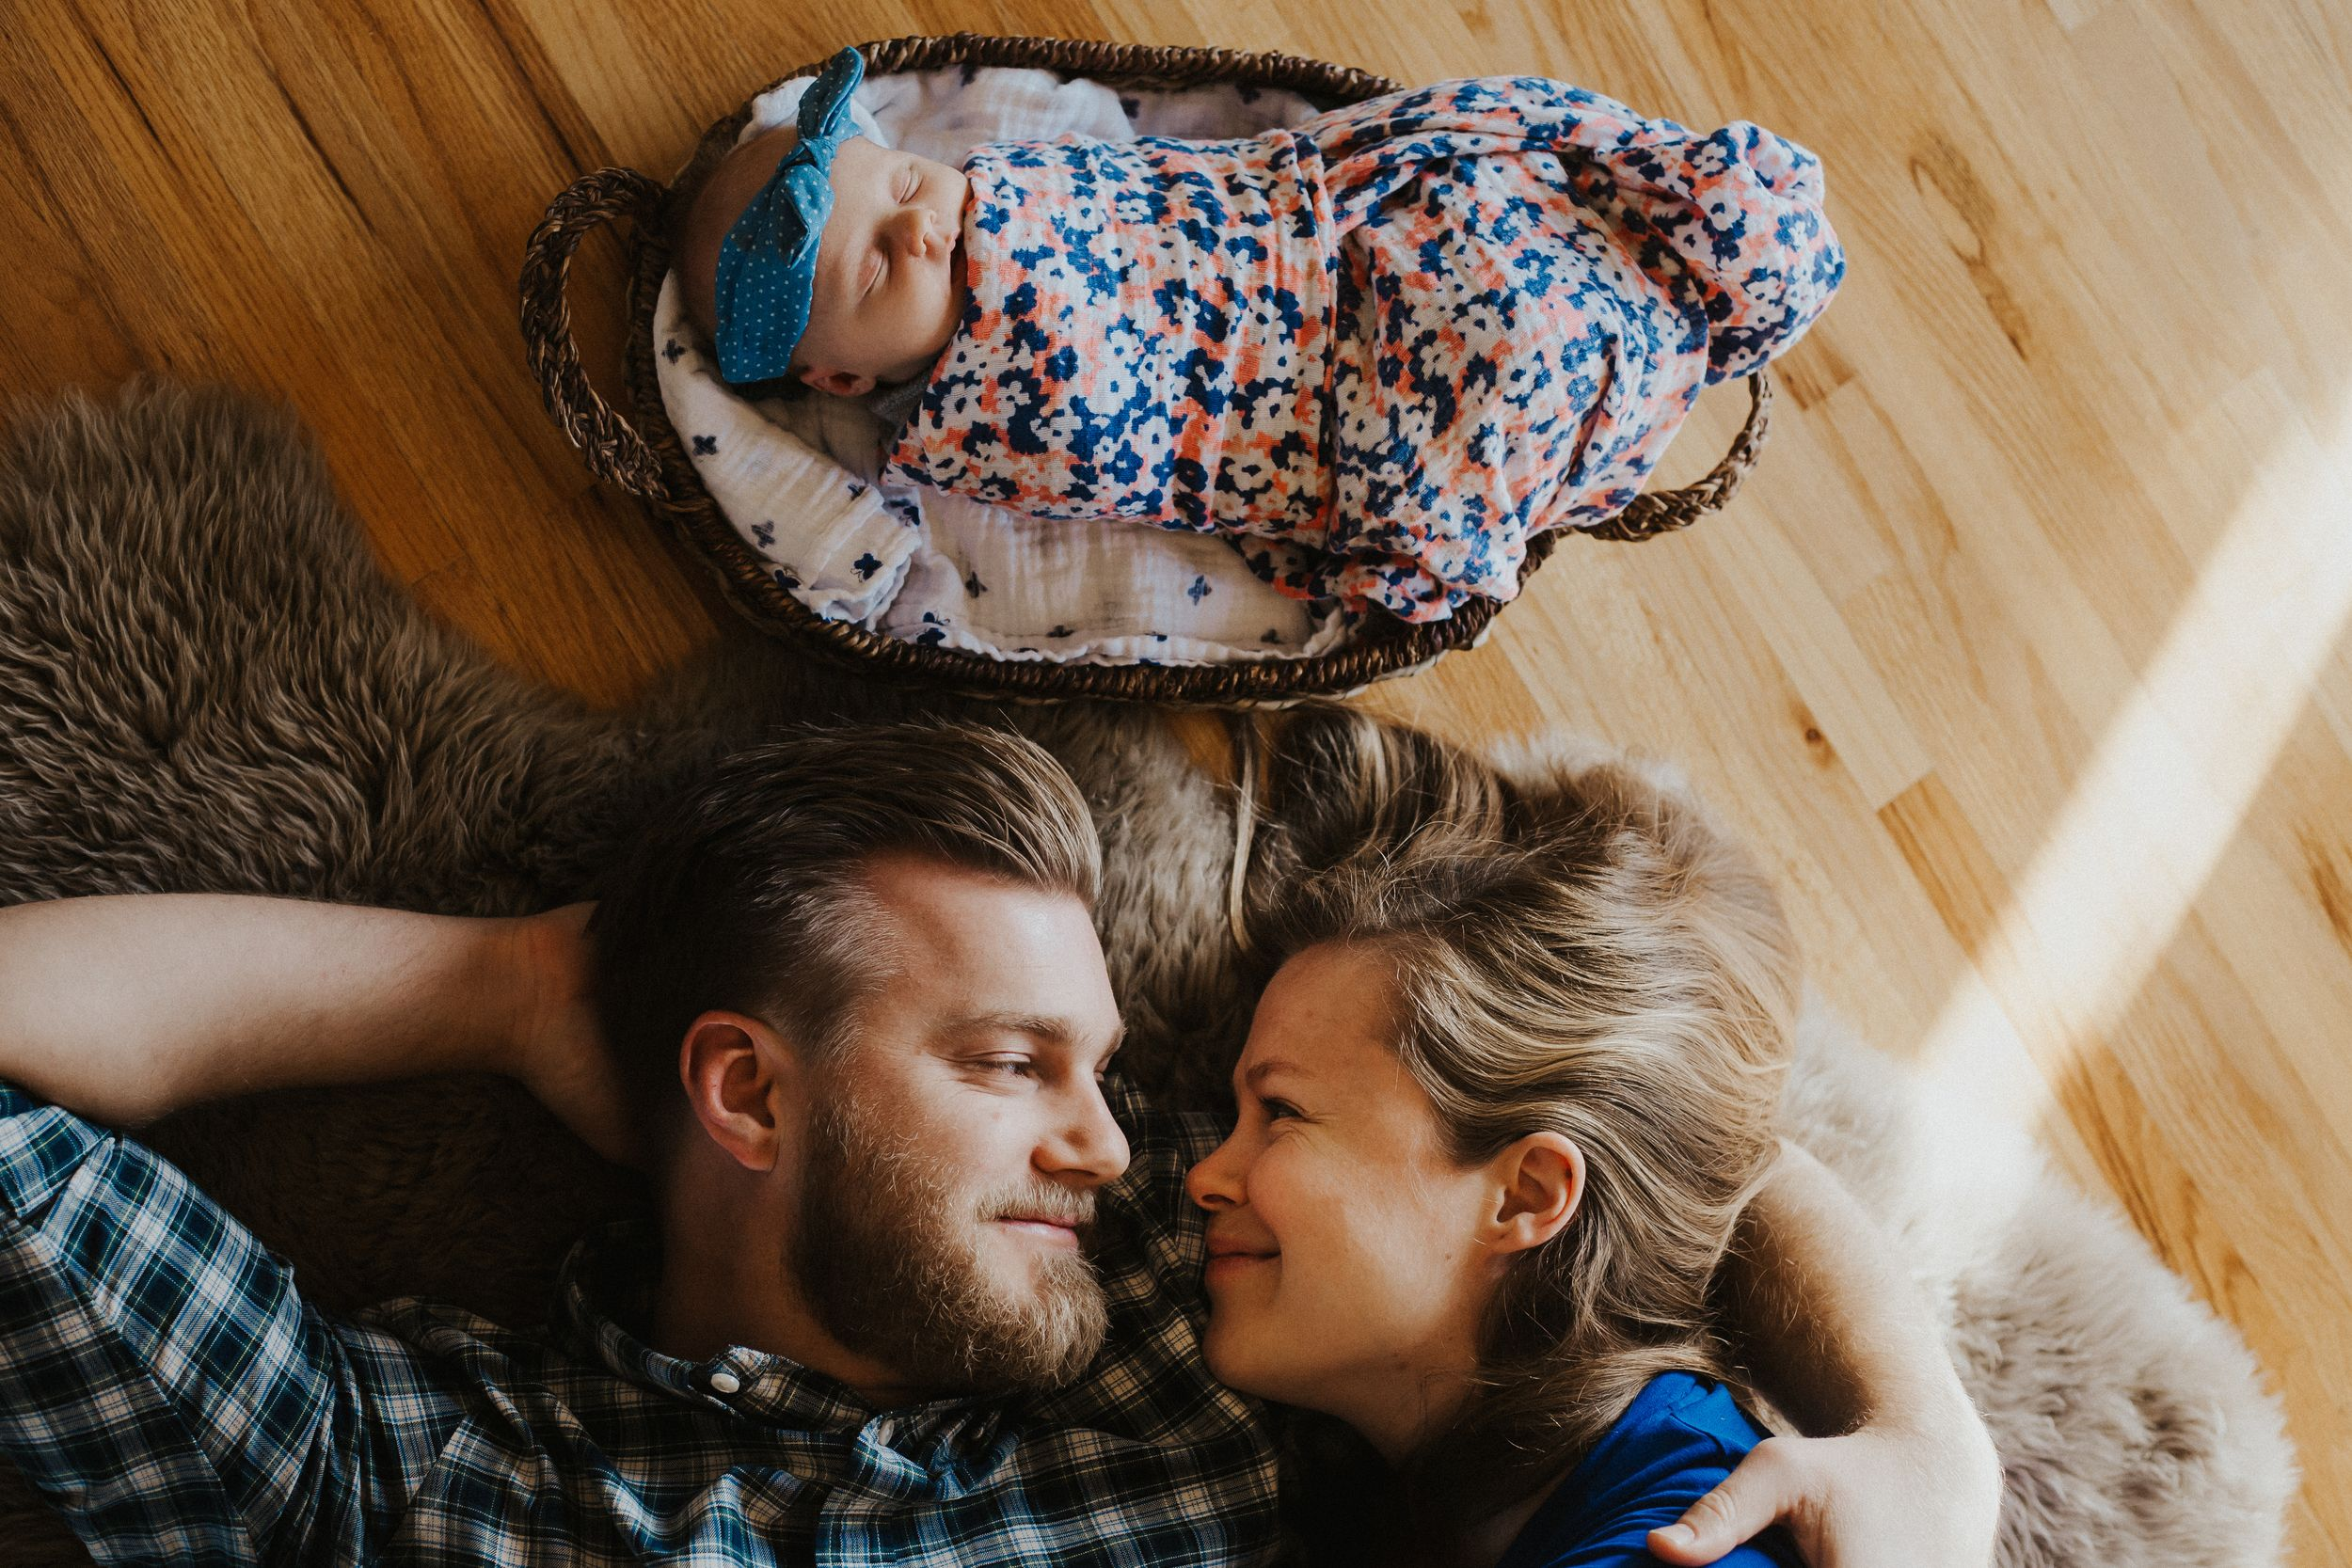 Couple lay on floor looking at each other with newborn baby in basket beside them